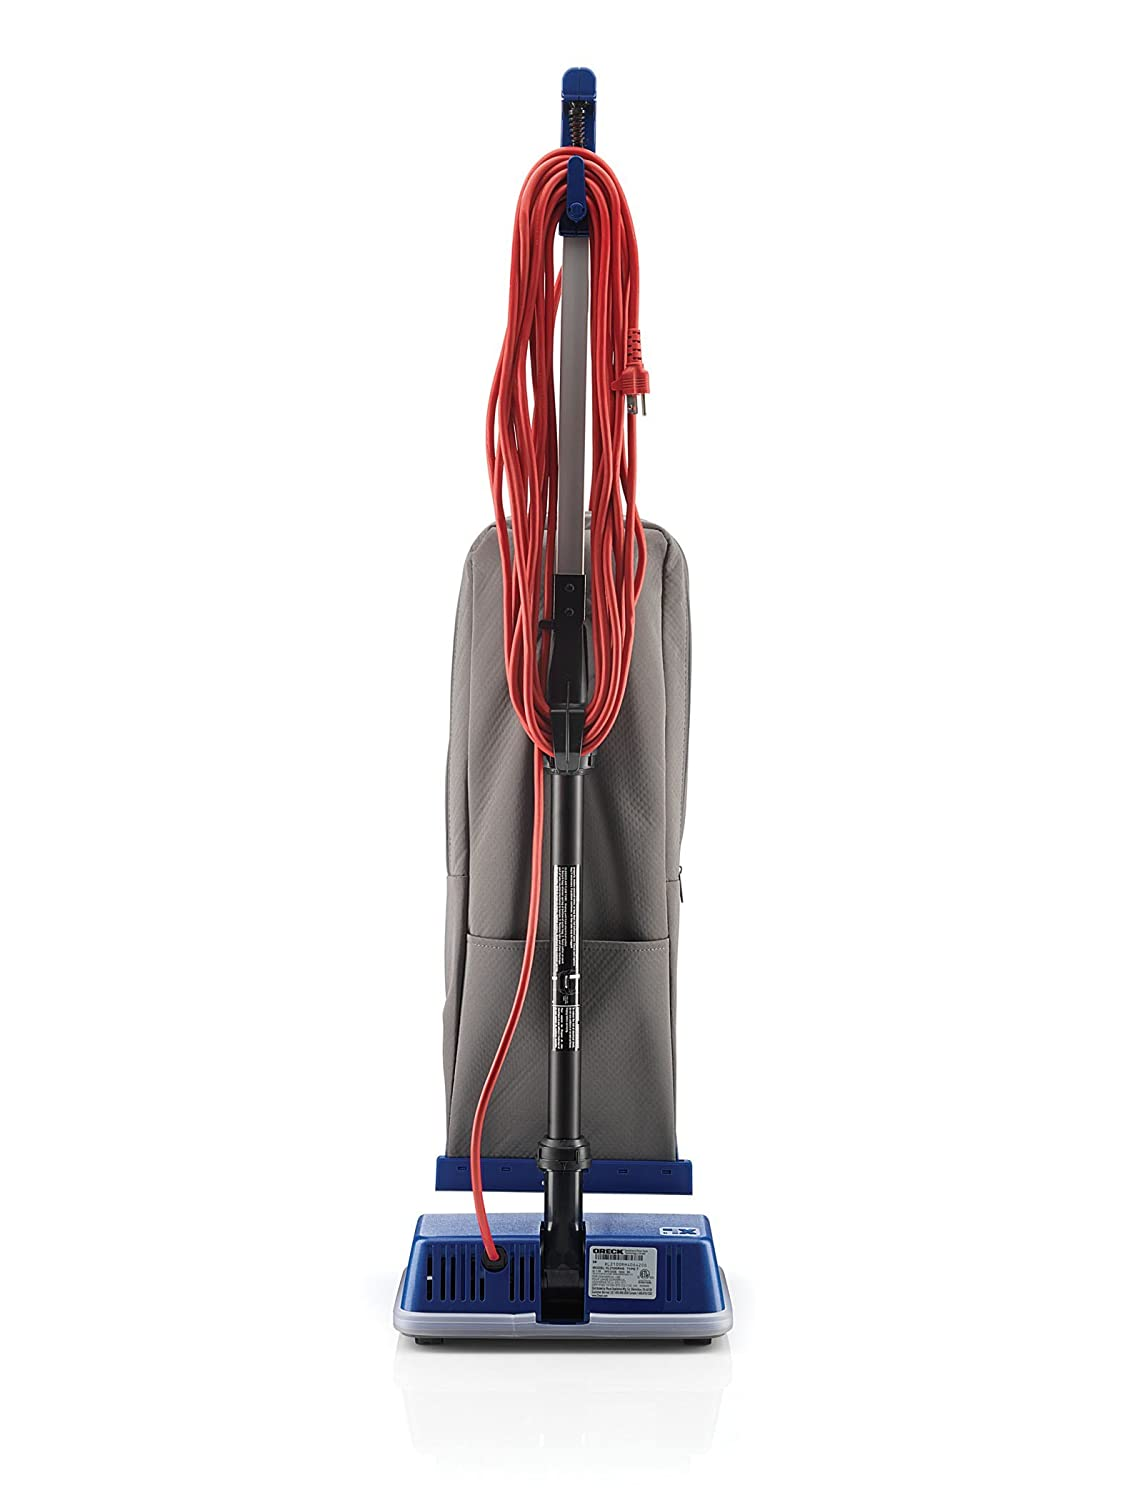 Oreck Commercial XL Commercial Upright Vacuum Cleaner, XL2100RHS: Household  Vacuums: Amazon.com: Industrial U0026 Scientific